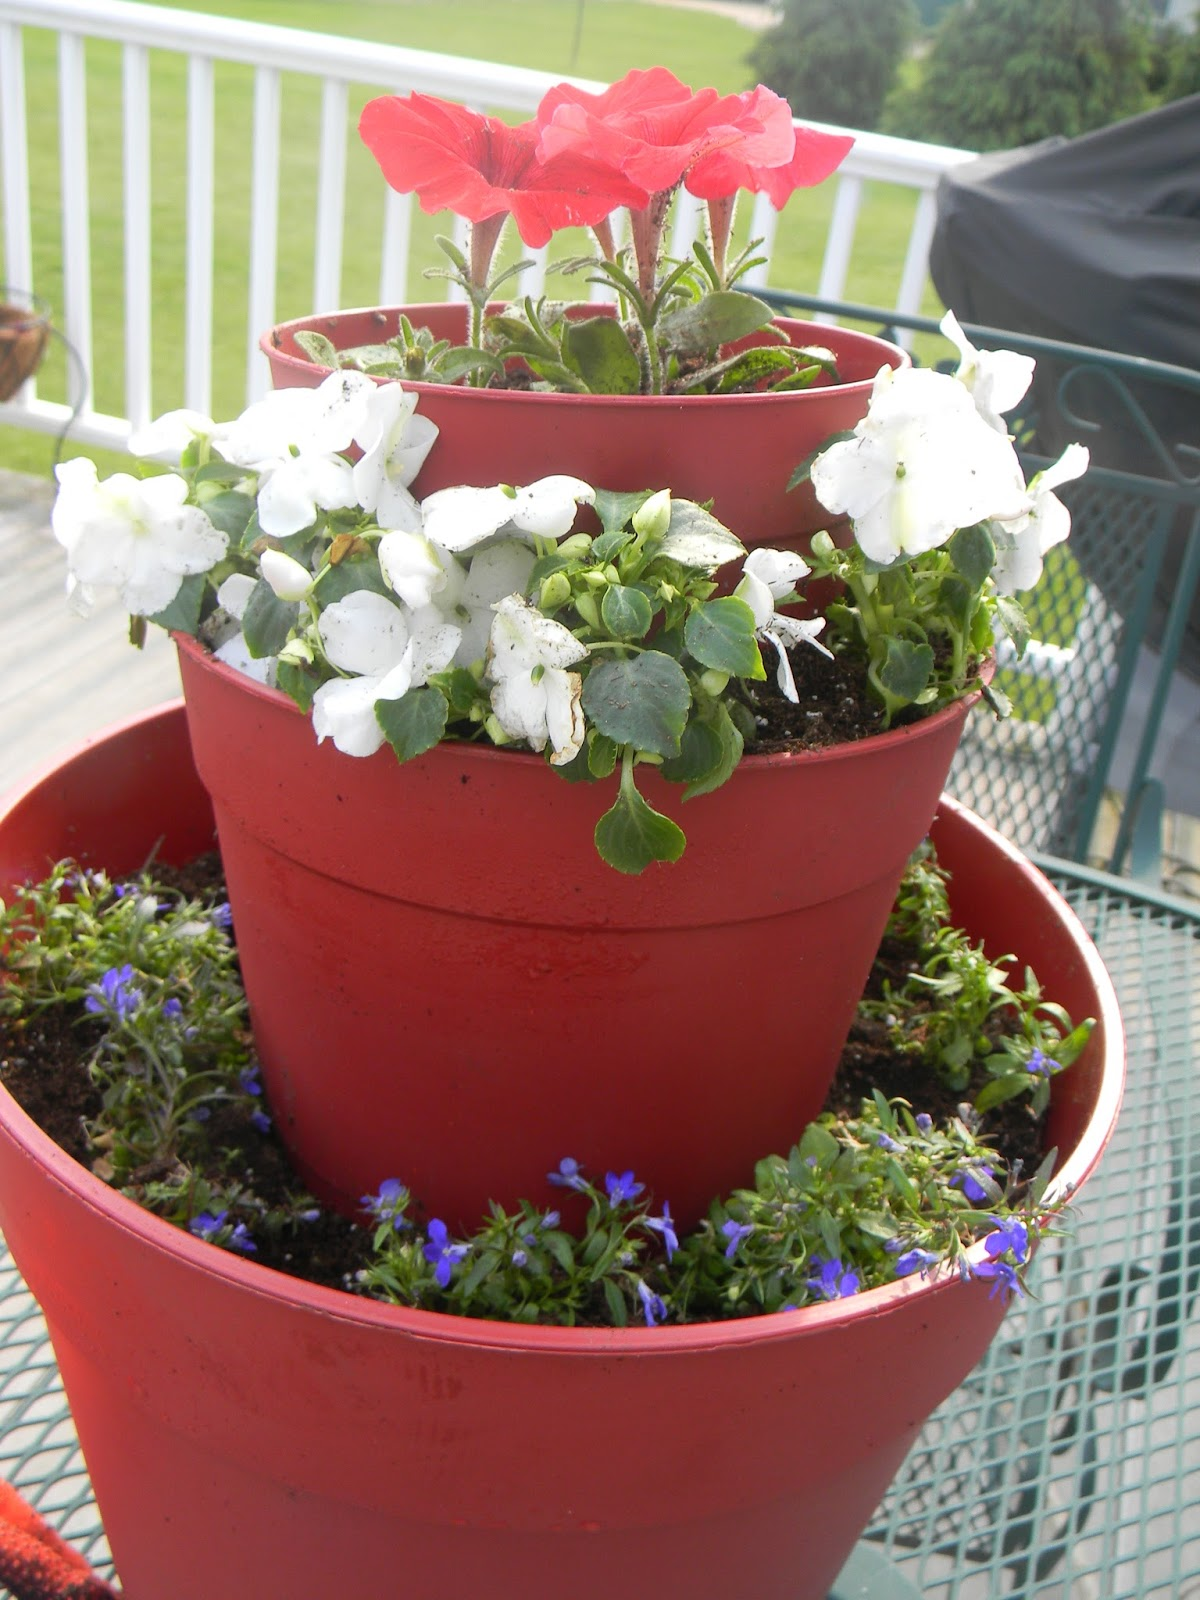 Tiered Planter, Red, White and Blue Flowers, Decorating for the 4th of July